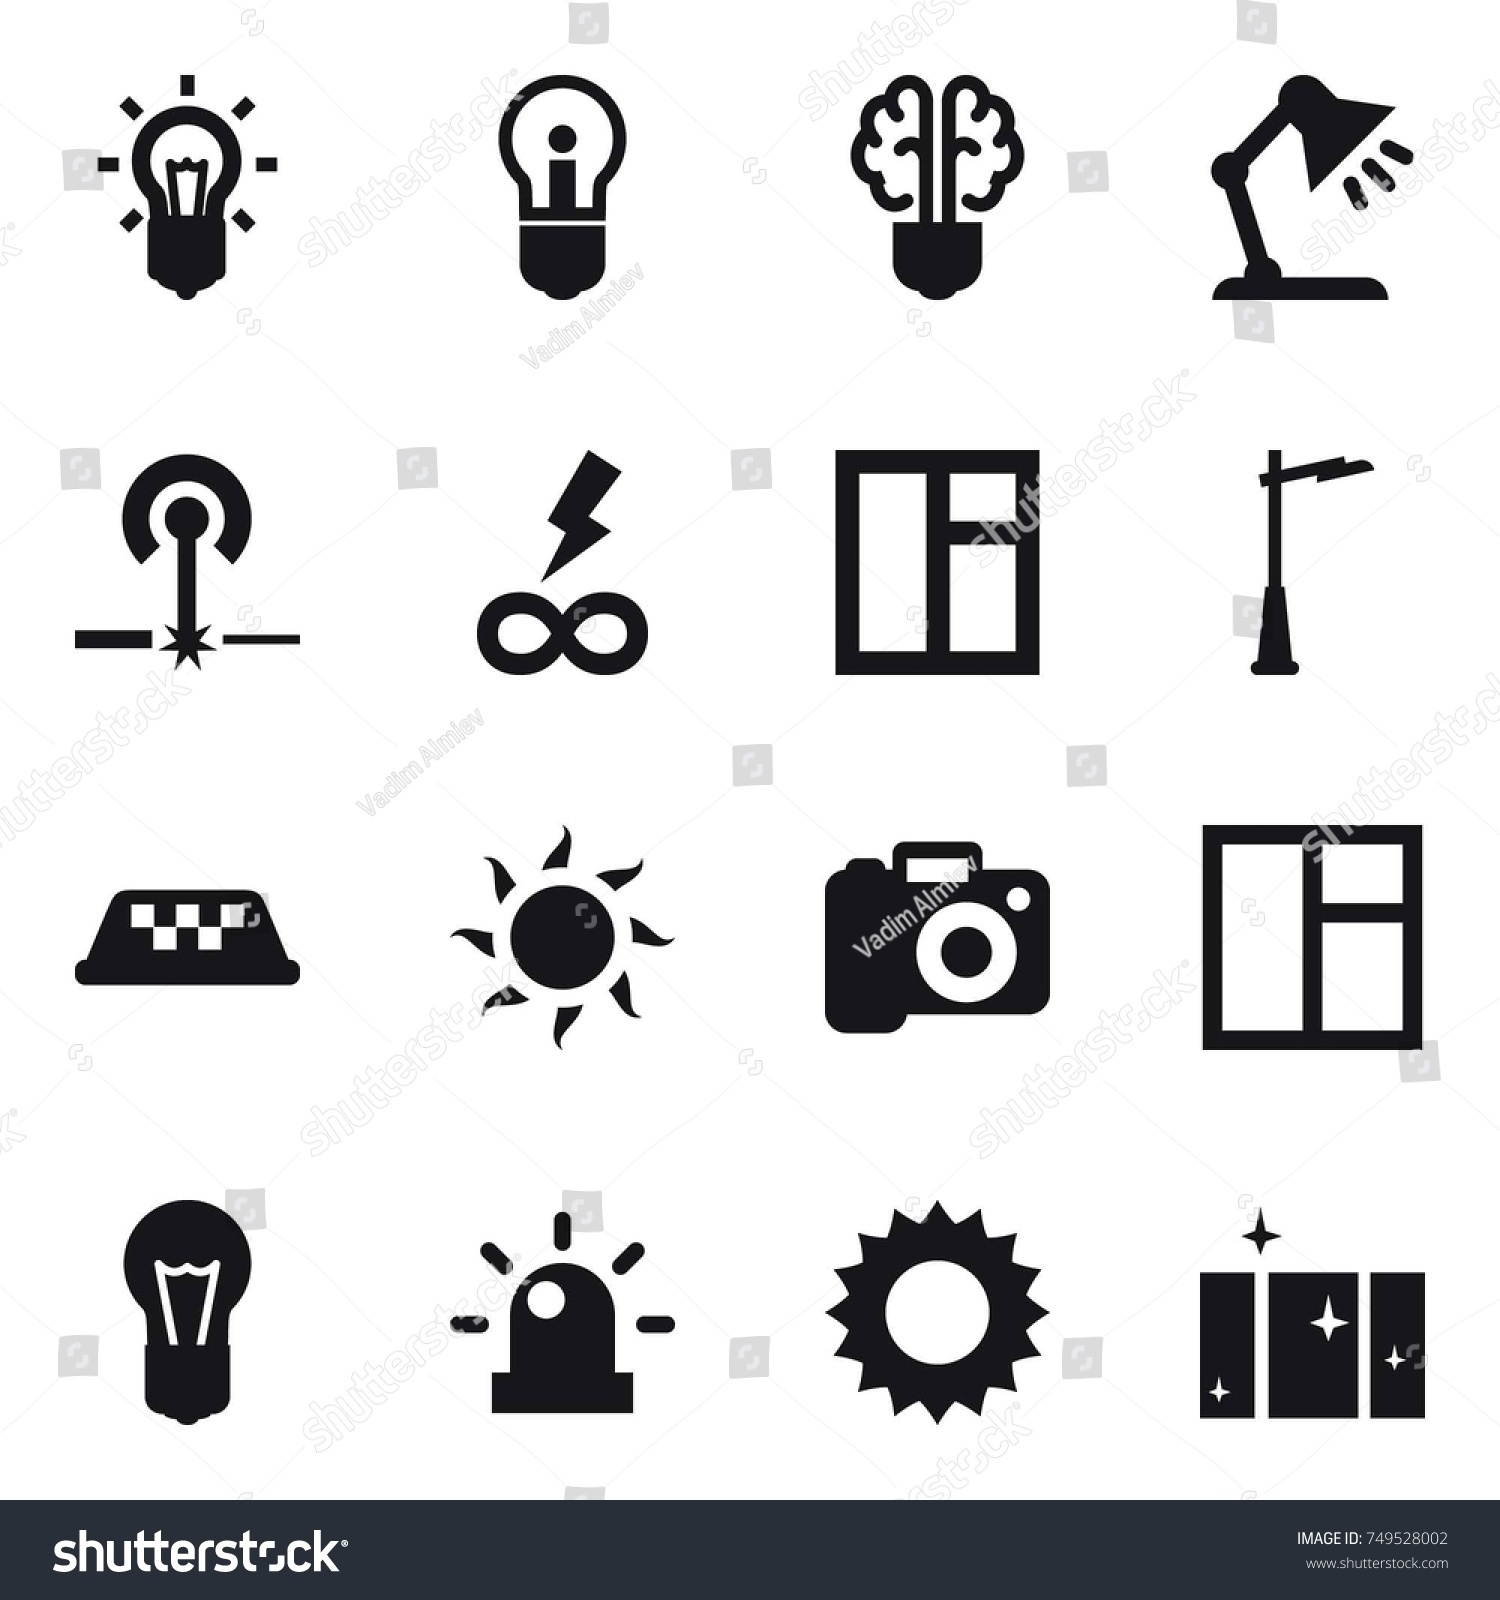 16 Vector Icon Set Bulb Bulb Stock Vector 749528002 - Shutterstock for Power Window Symbol  589ifm